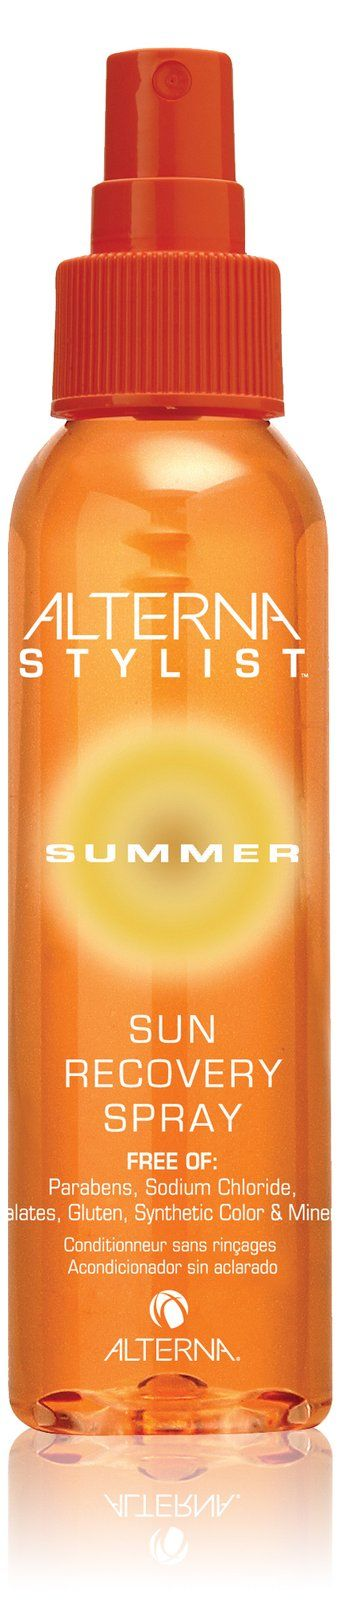 Alterna Summer Sun Recovery Spray